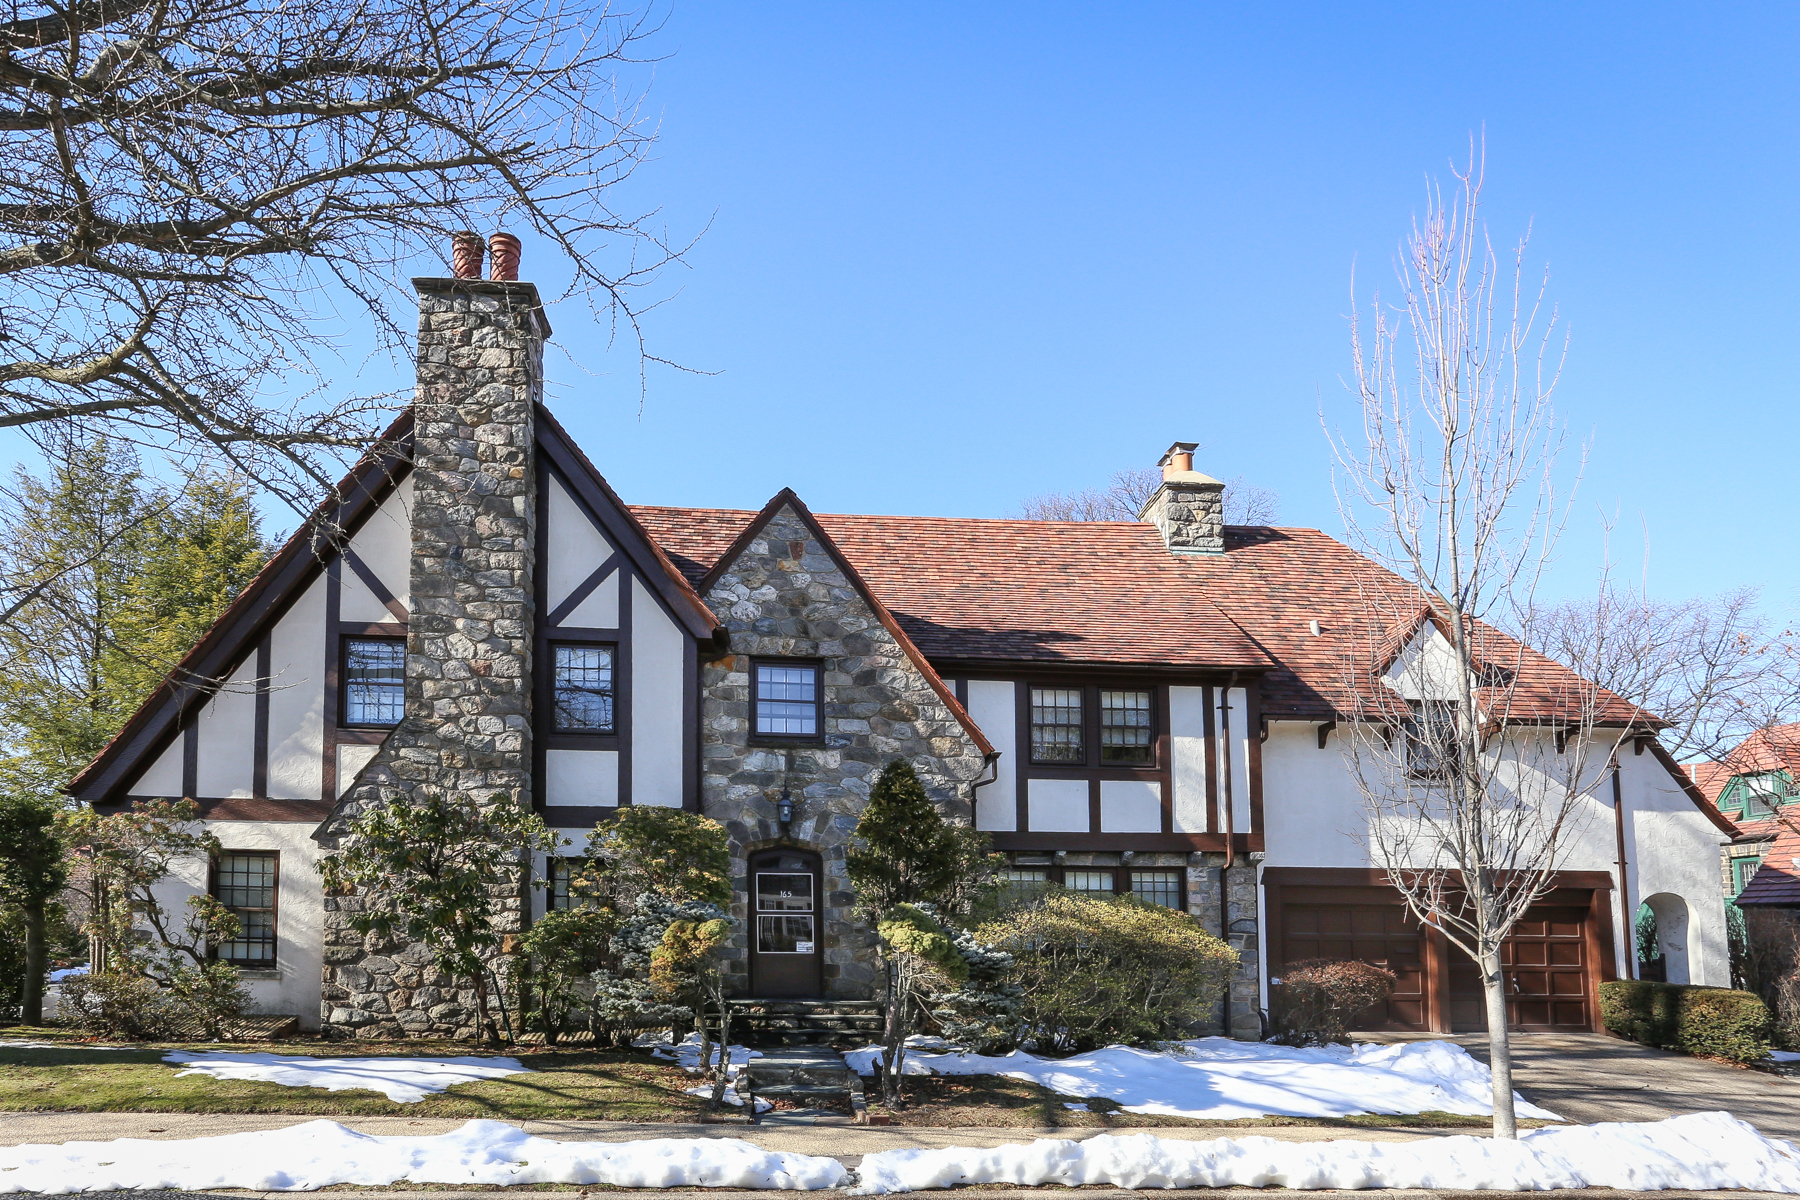 """Single Family Home for Sale at """"STATELY FIELDSTONE TUDOR"""" 165 Slocum Crescent, Forest Hills Gardens, Forest Hills, New York 11375 United States"""